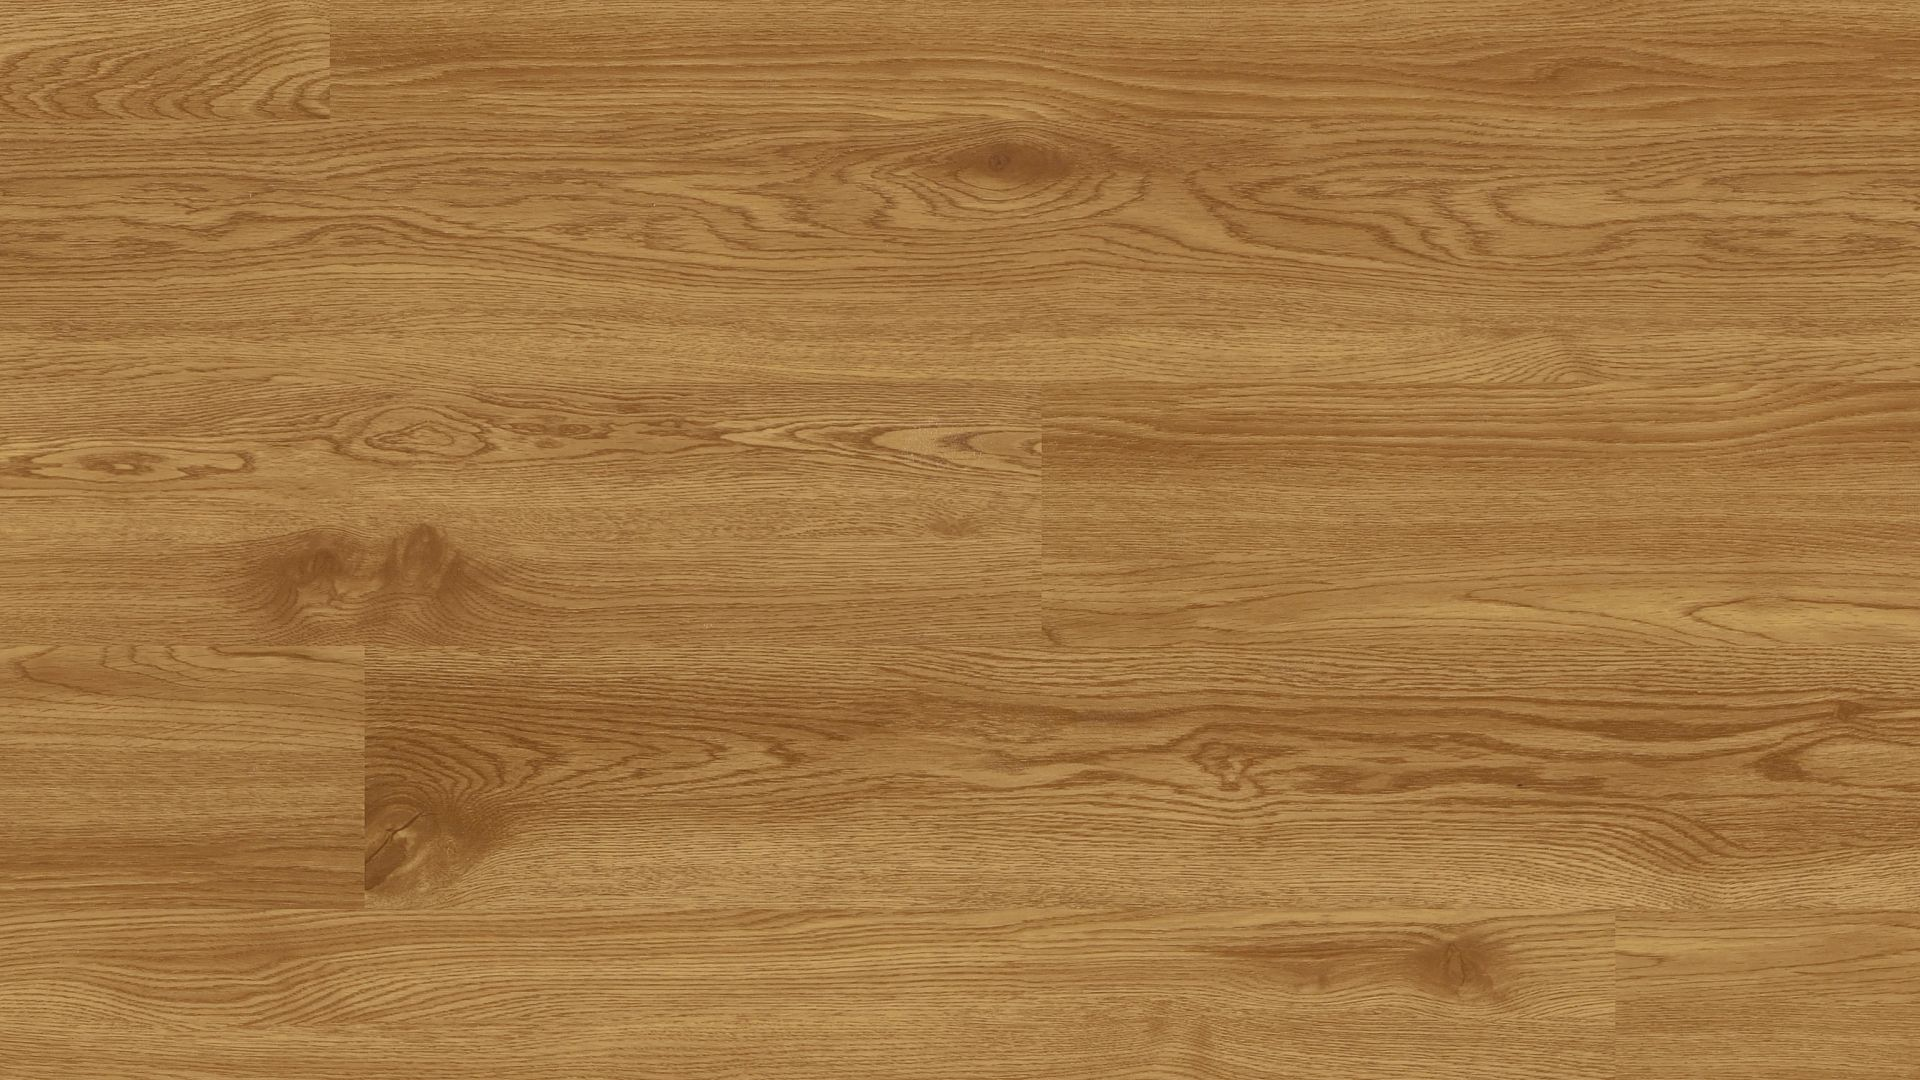 Coretec One Peruvian Walnut Vv022 00803